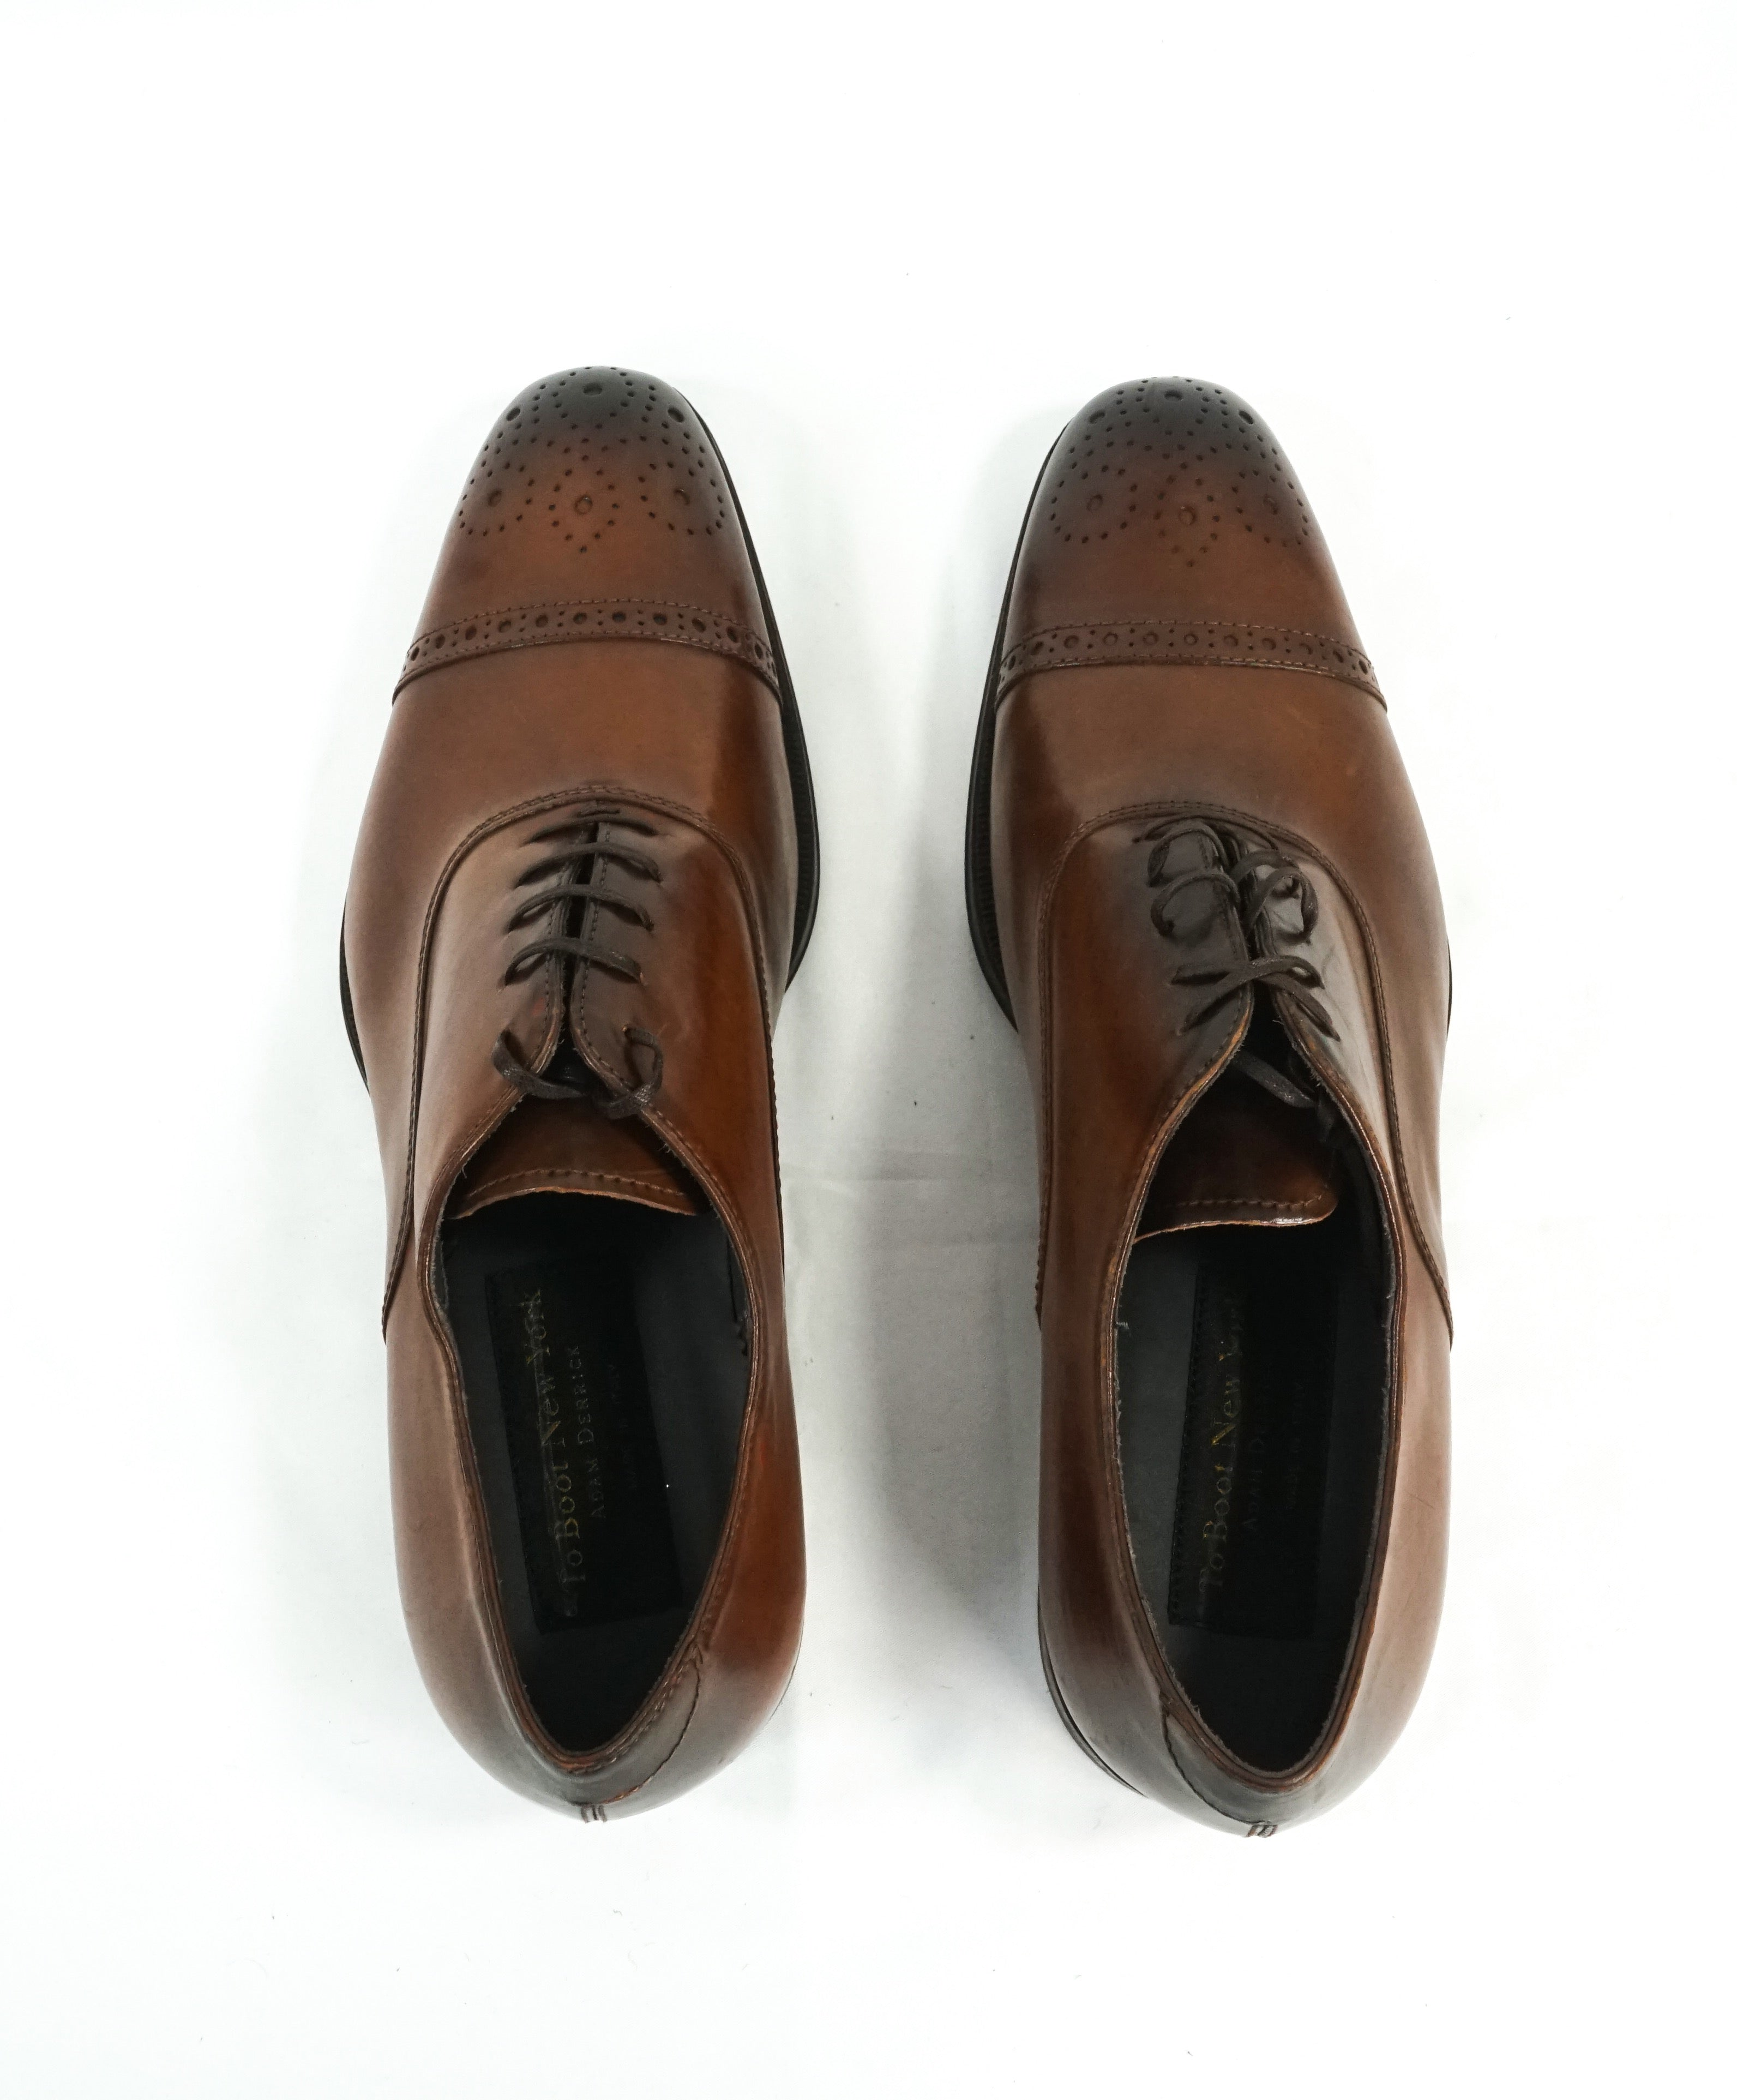 TO BOOT NEW YORK - Cap-Toe Brogue Oxford Brown With Slim Silhouette - 9